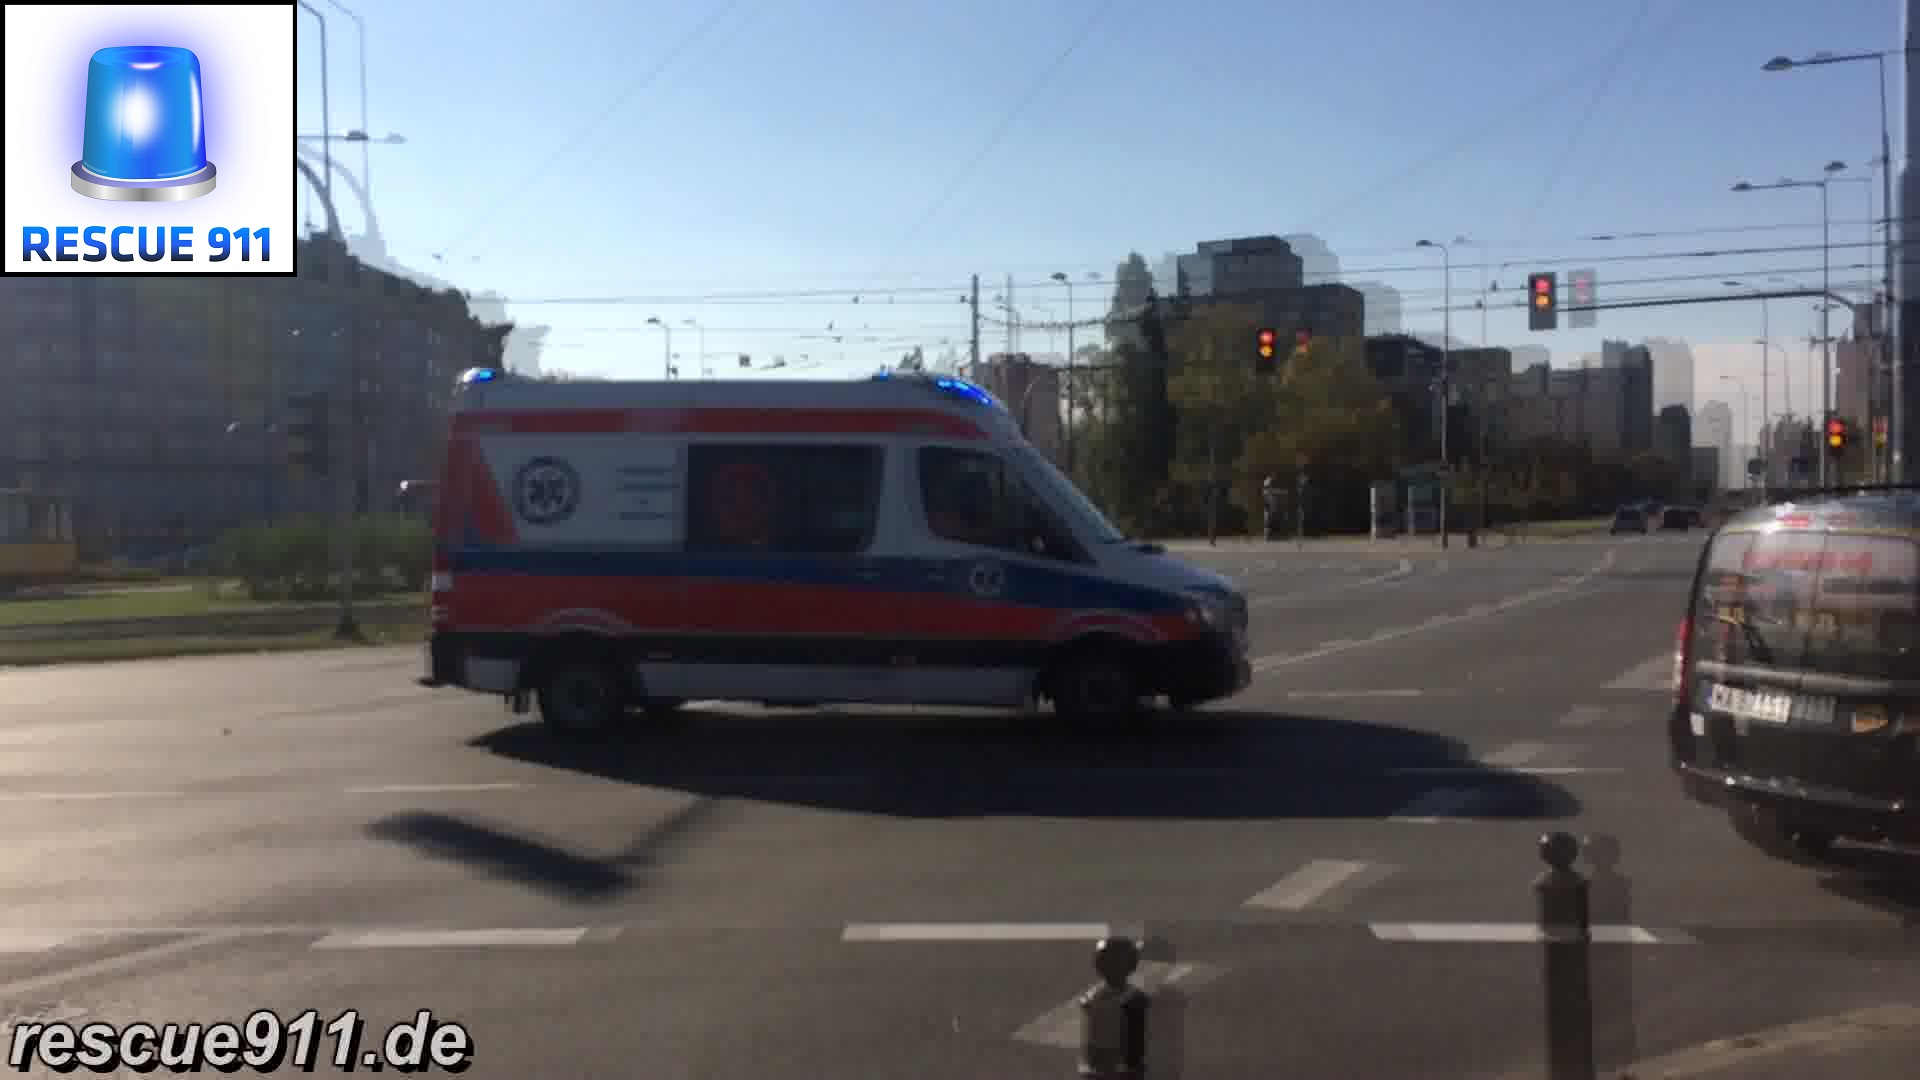 Warsaw Emergency Vehicles (collection) (stream)